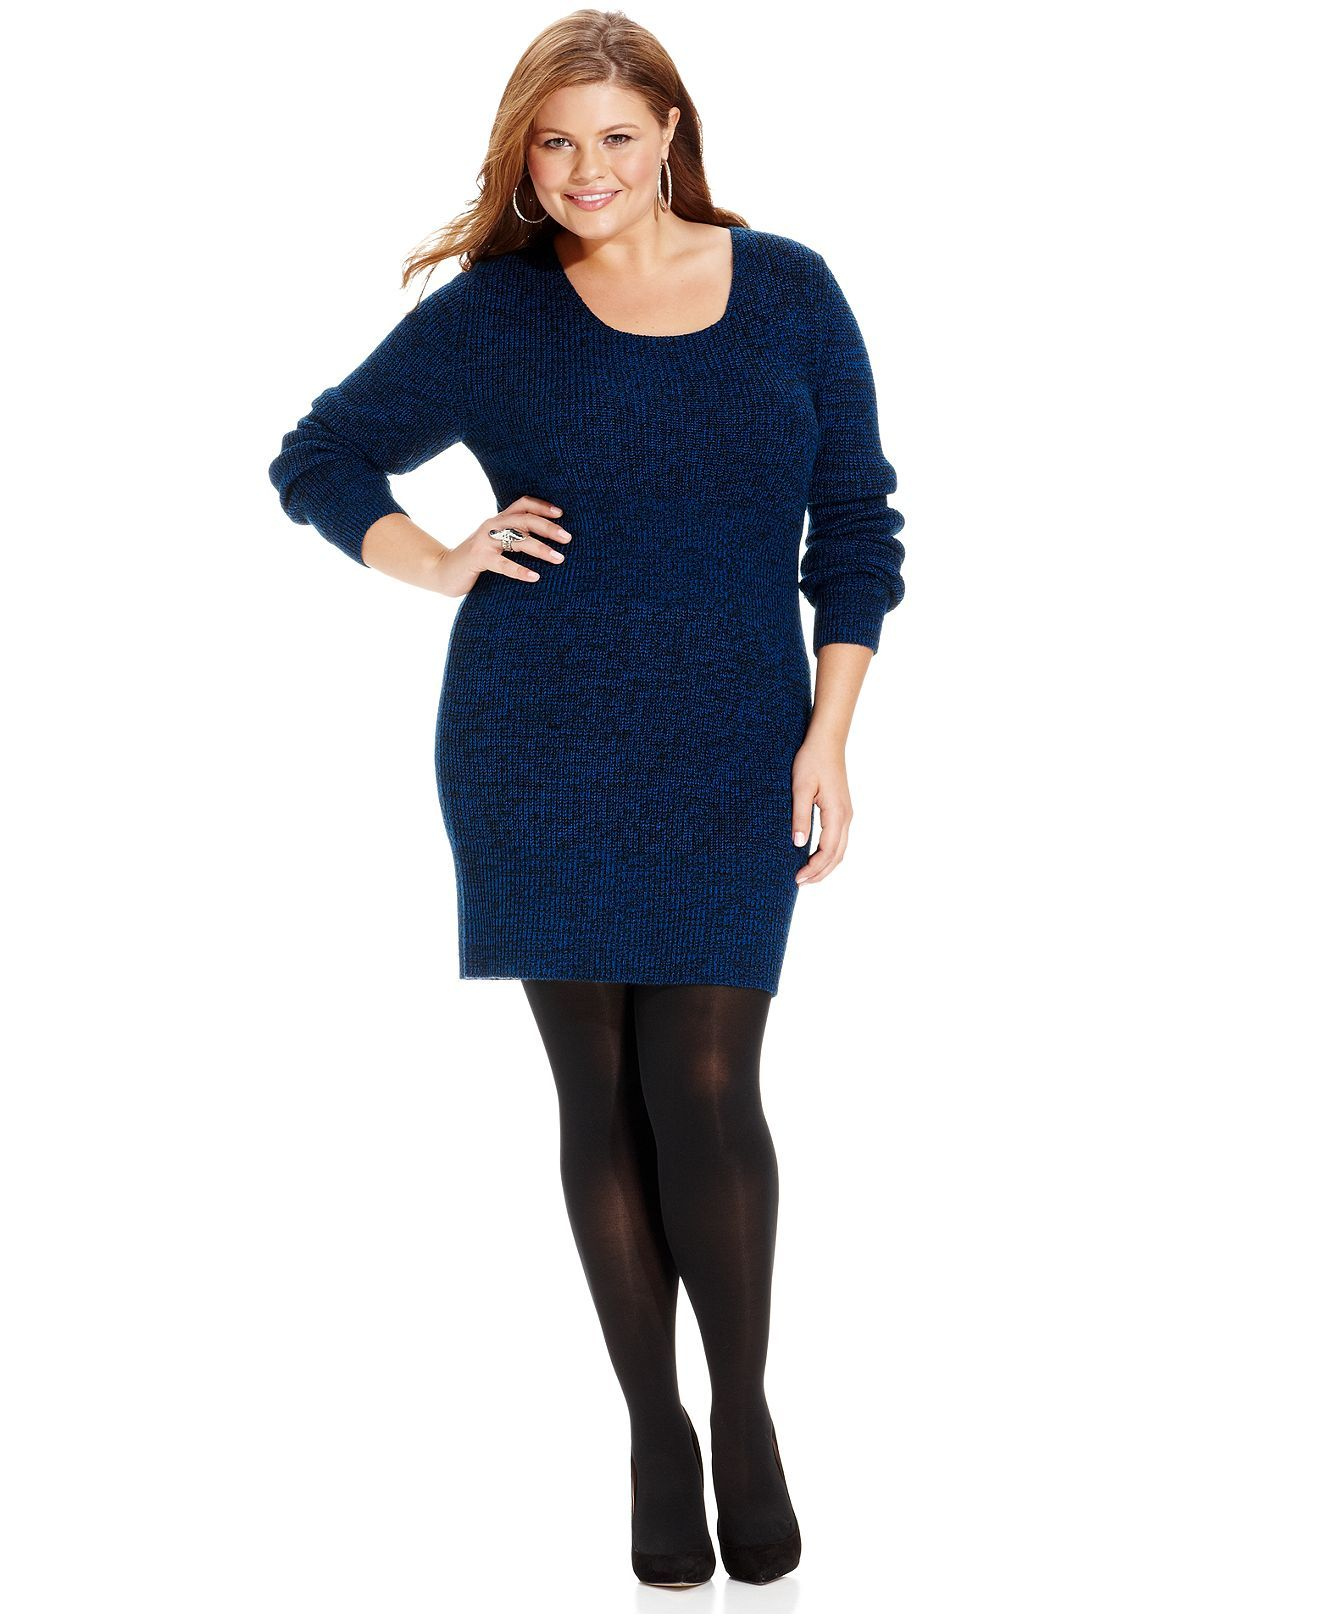 Extra Touch Plus Size Long Sleeve Marled Crisscross Back Sweater